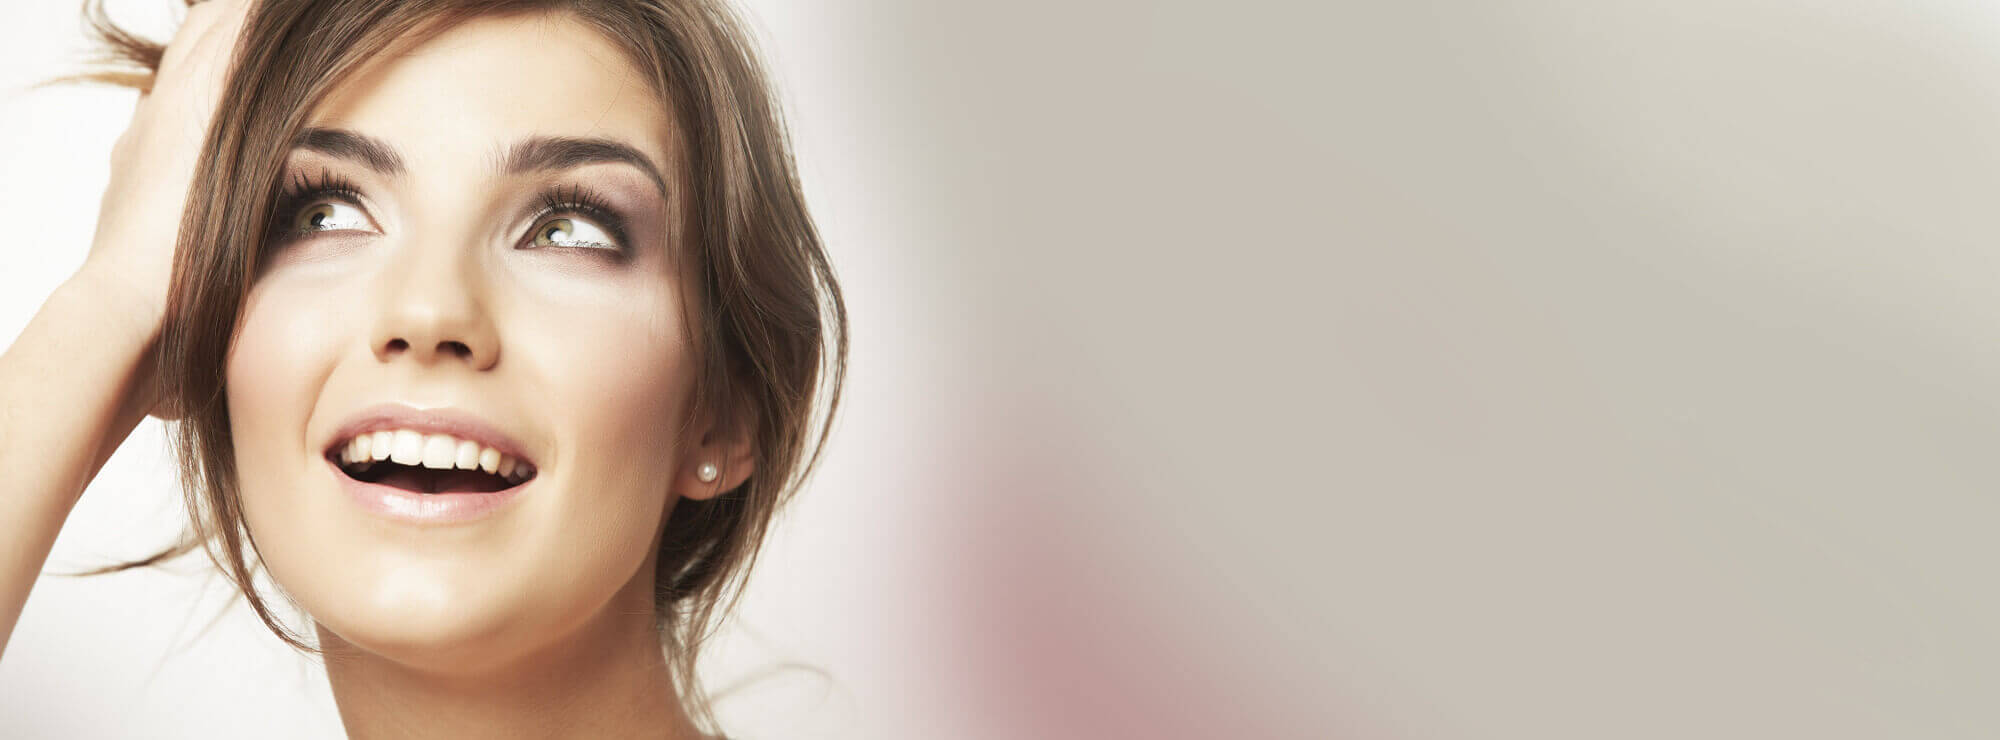 The One-Stop Service That Offers Big Discounts on Cosmetic Procedures